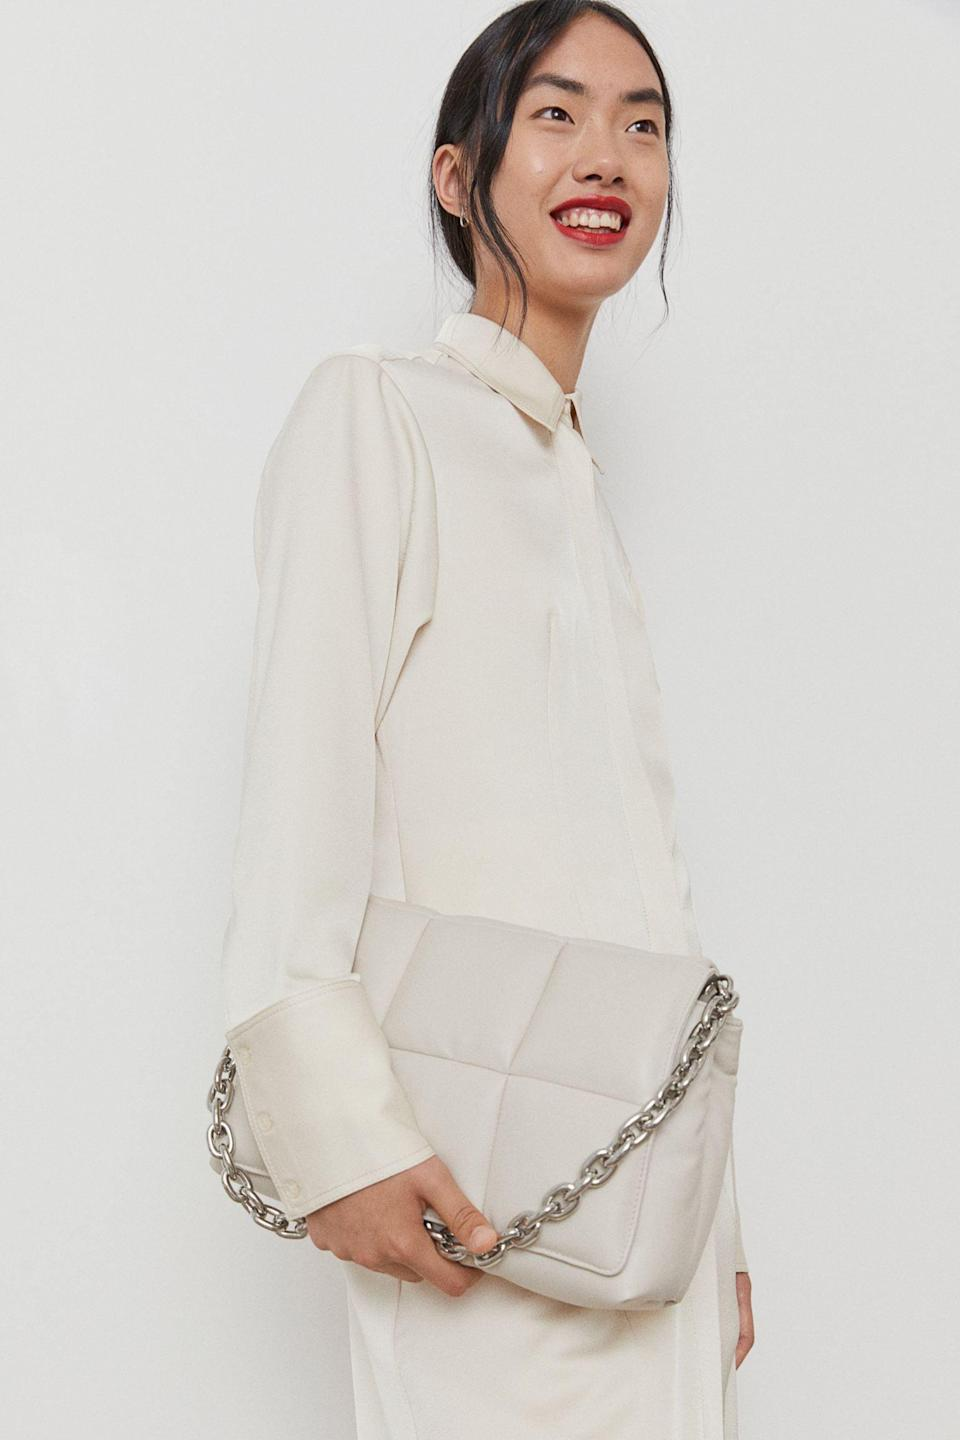 <p>What we love most about this <span>Quilted Shoulder Bag</span> ($40) is that it will stylishly transition from the office to afterwork happy hour. It's a stunning, versatile piece.</p>